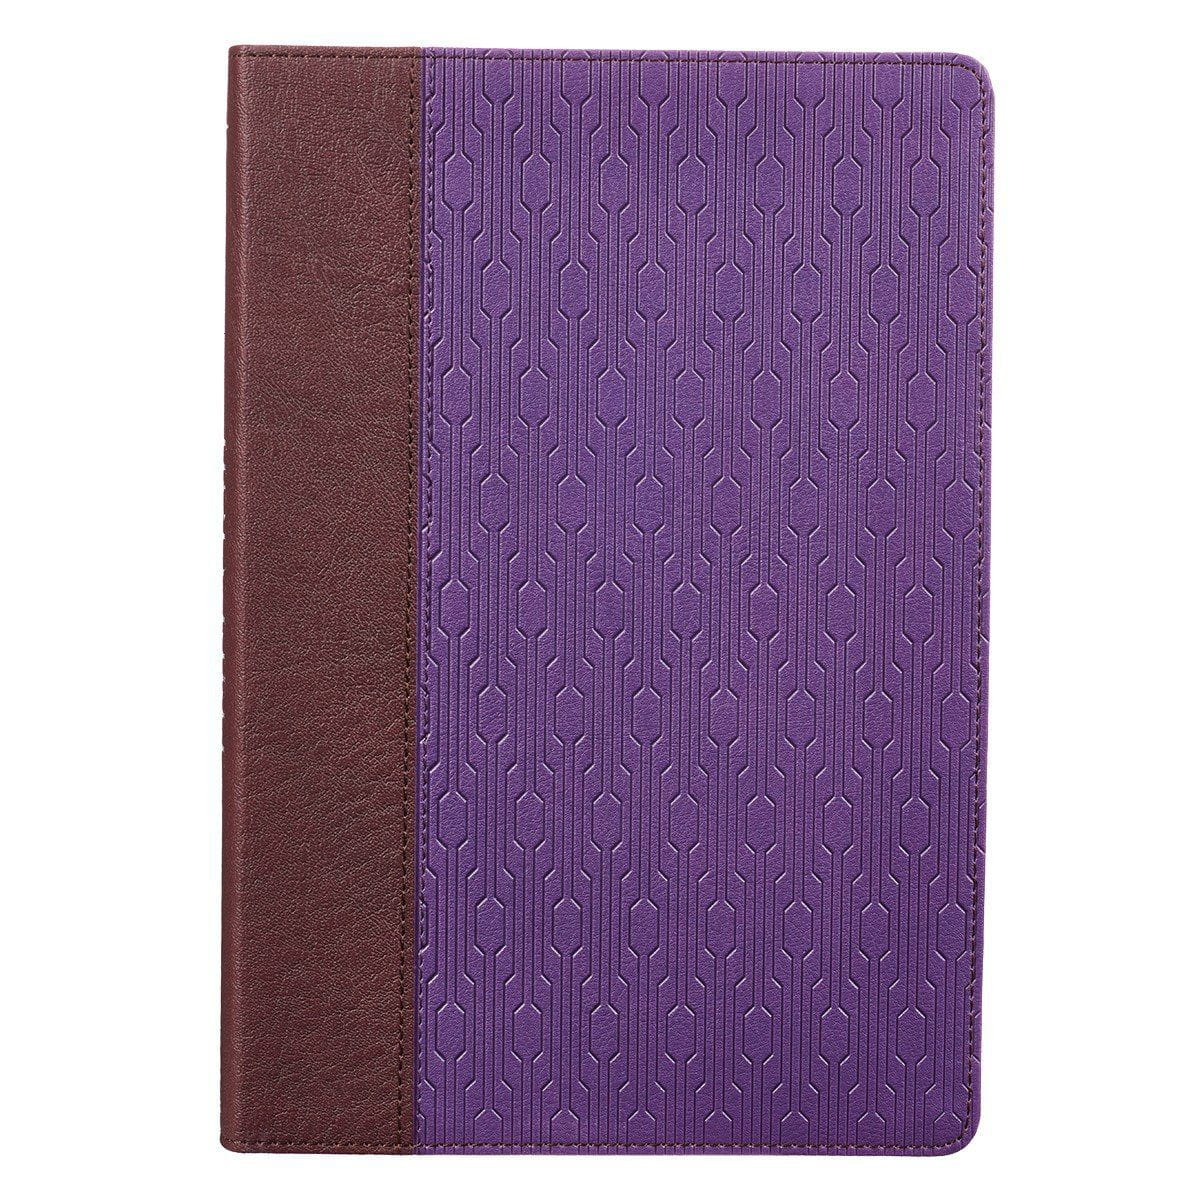 Brown and Purple KJV Bible Large Print